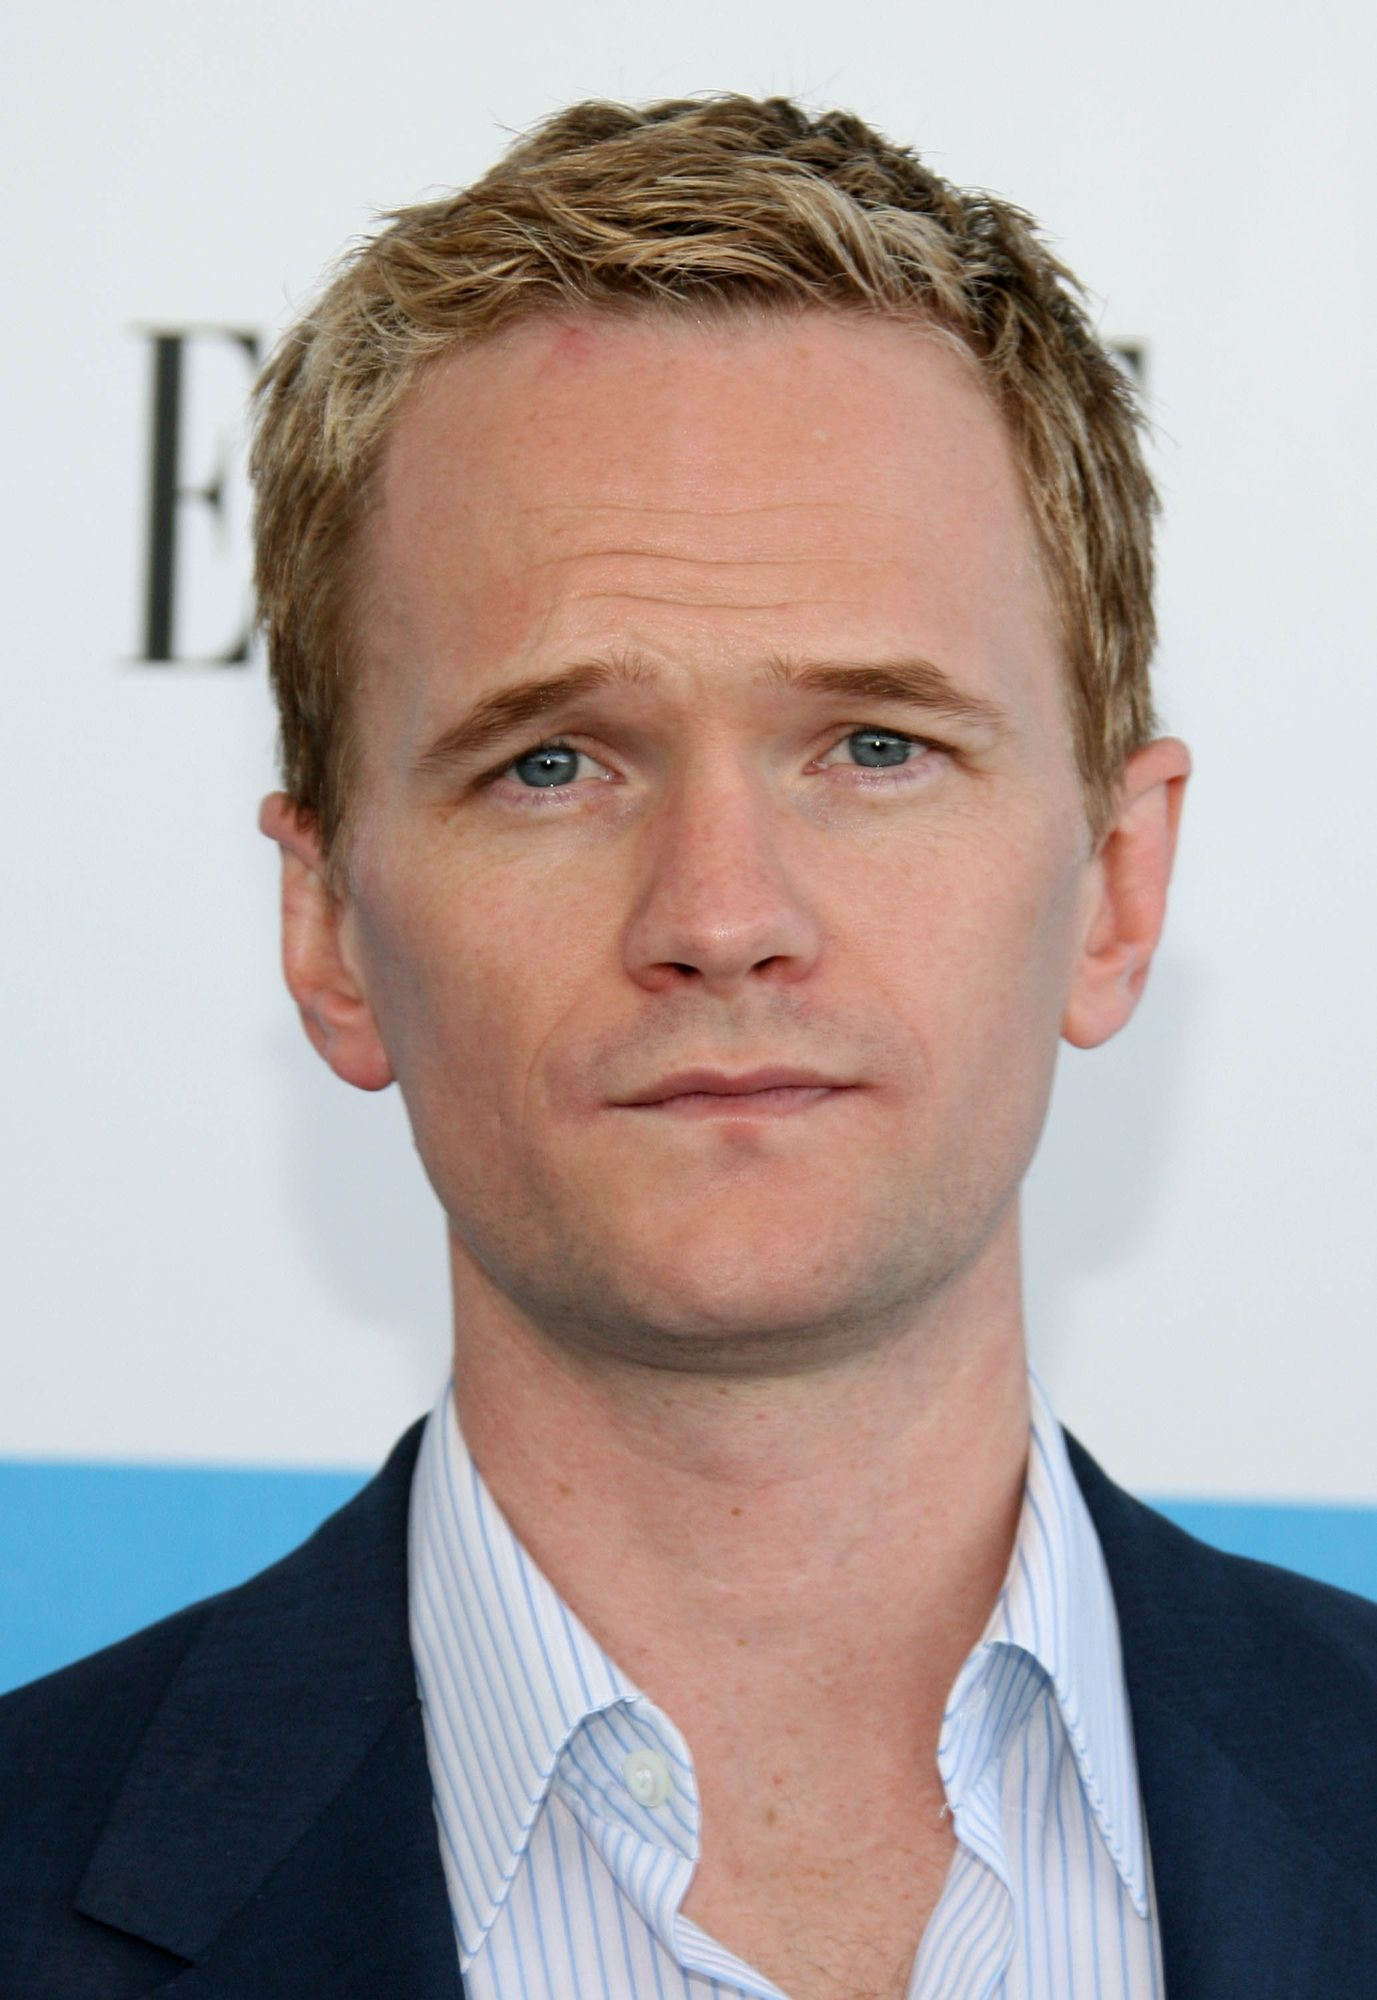 Classic Hairstyles For Men With Thin Hair Patrick Harris Neil